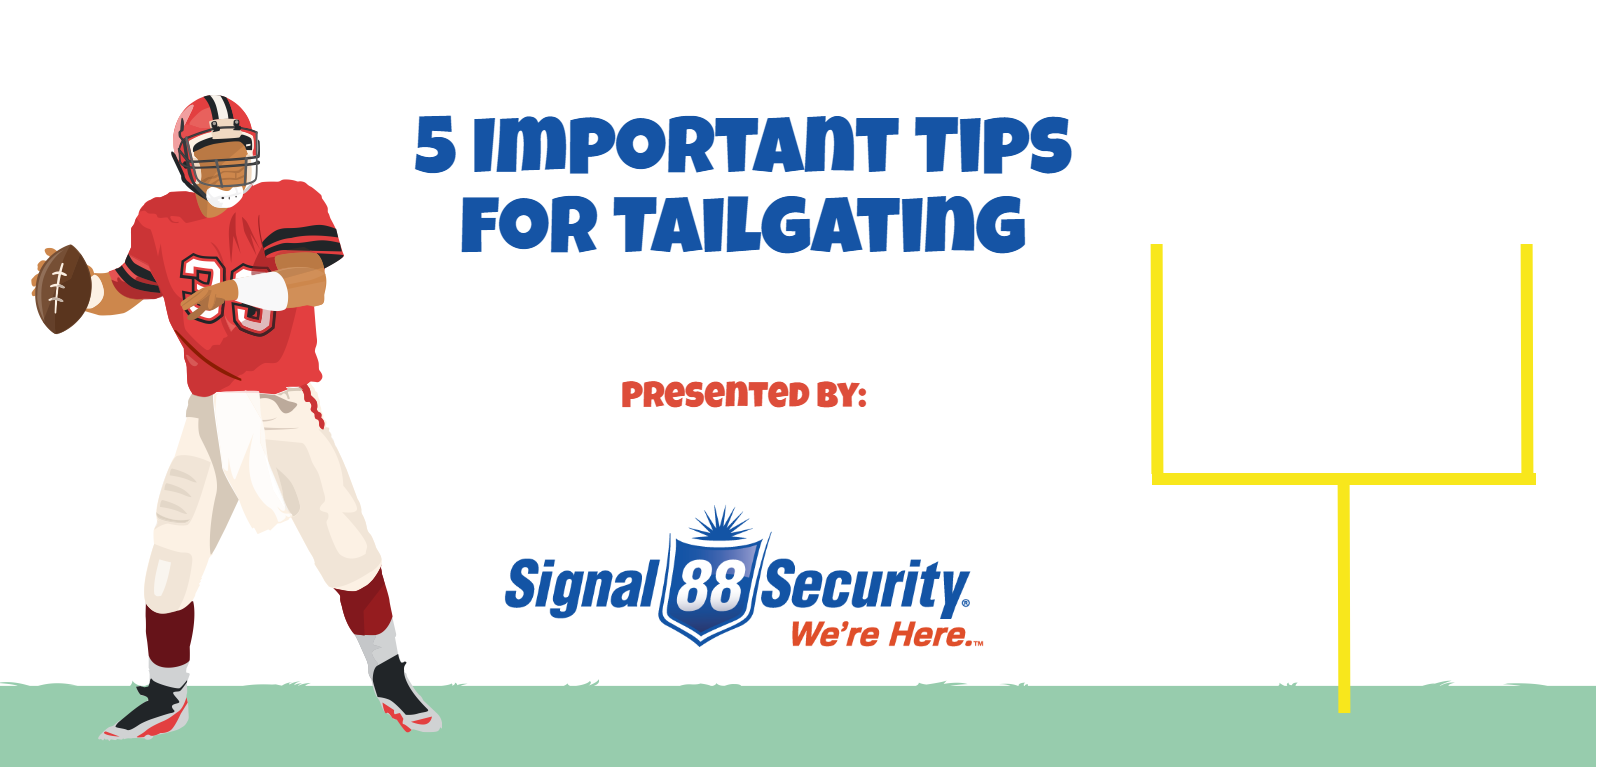 Tailgating Tips screenshot.png